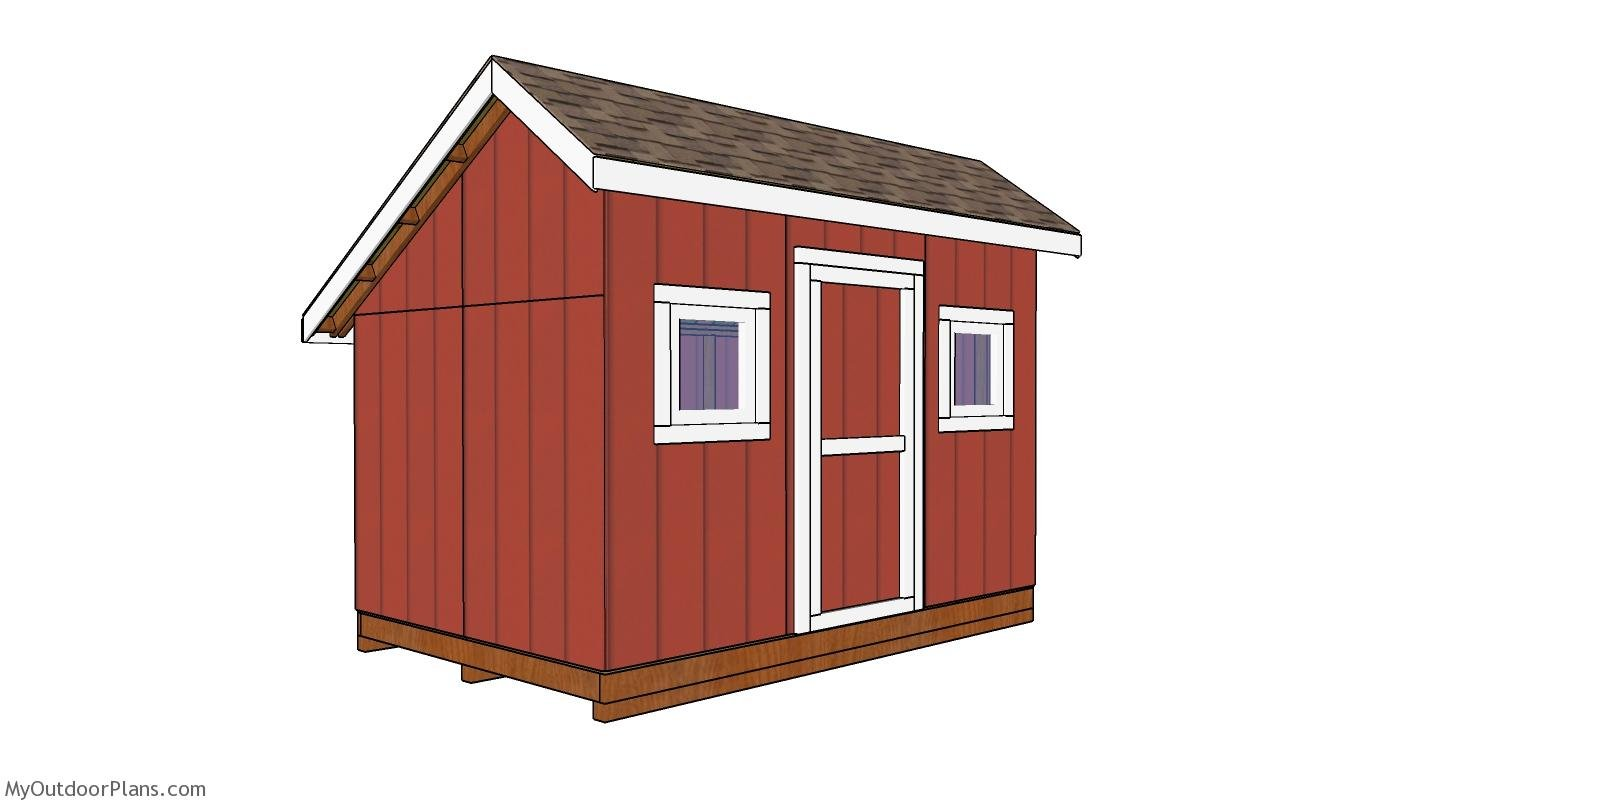 8x12 Saltbox Shed - Free DIY Plans